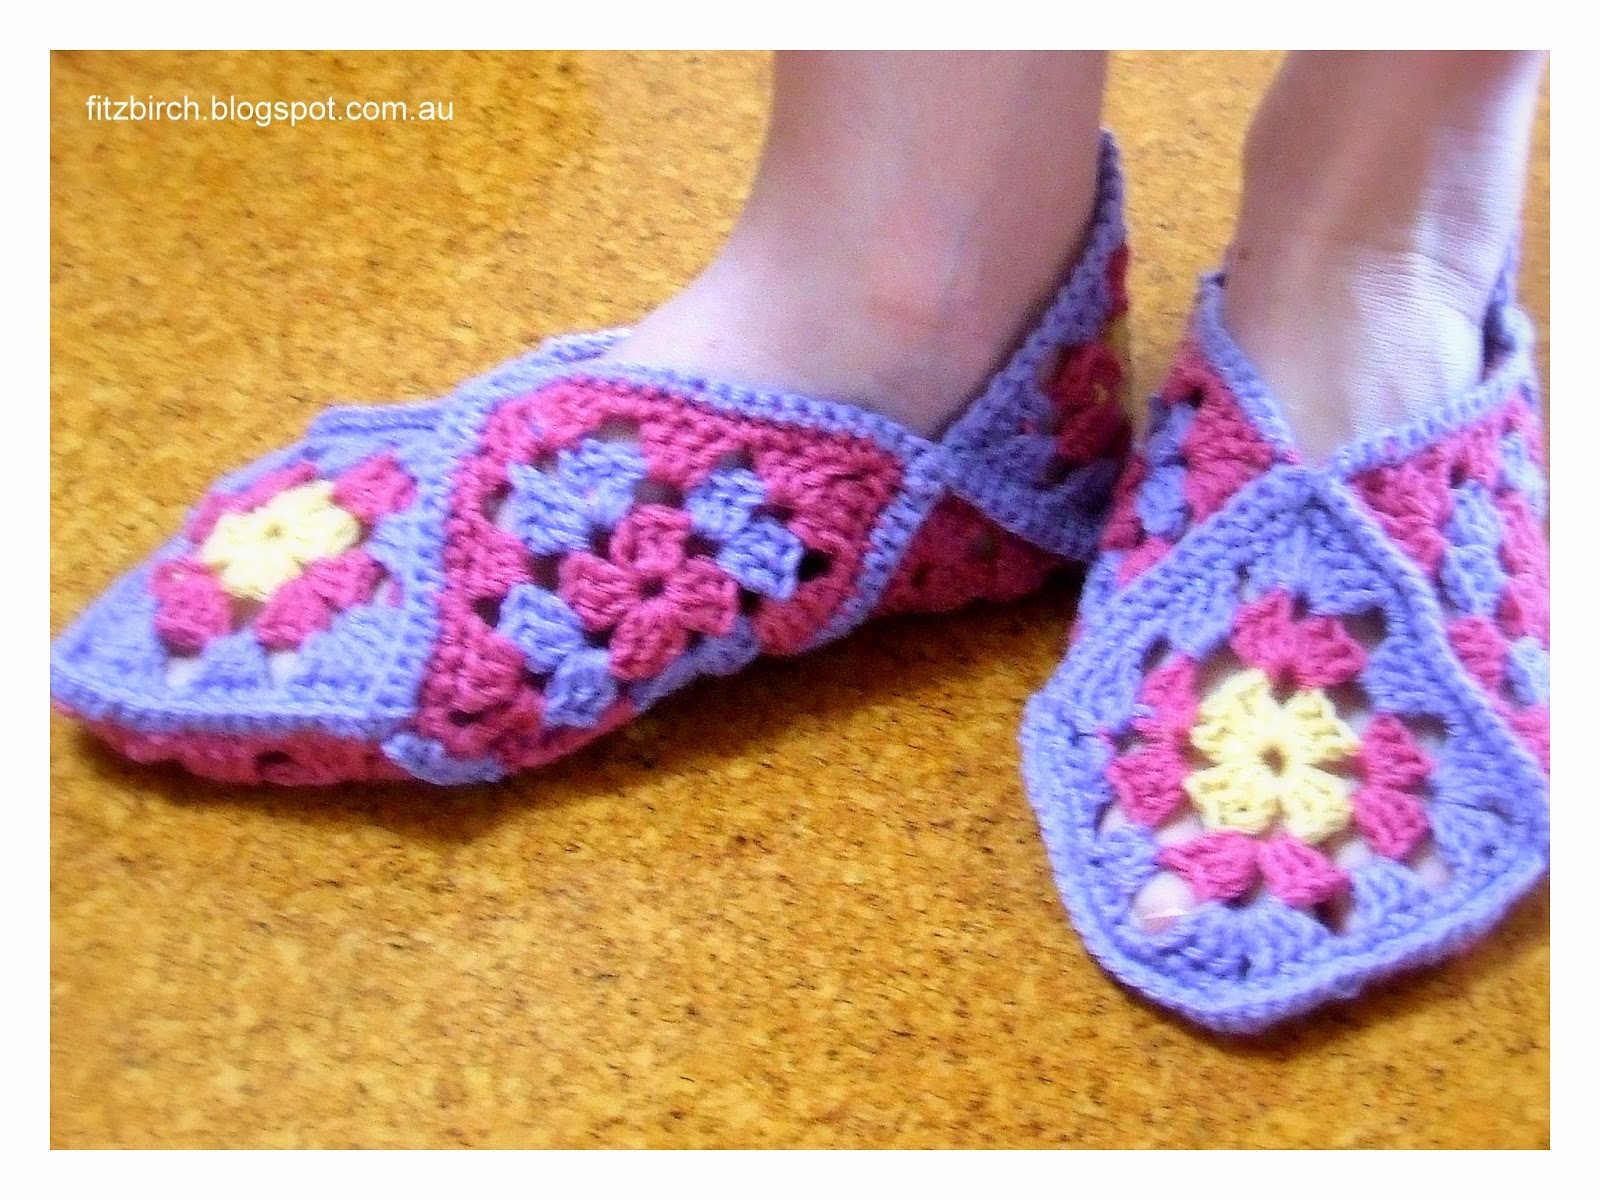 Crochet Granny Square Slipper Pattern : FitzBirch Crafts: Granny Square Slippers